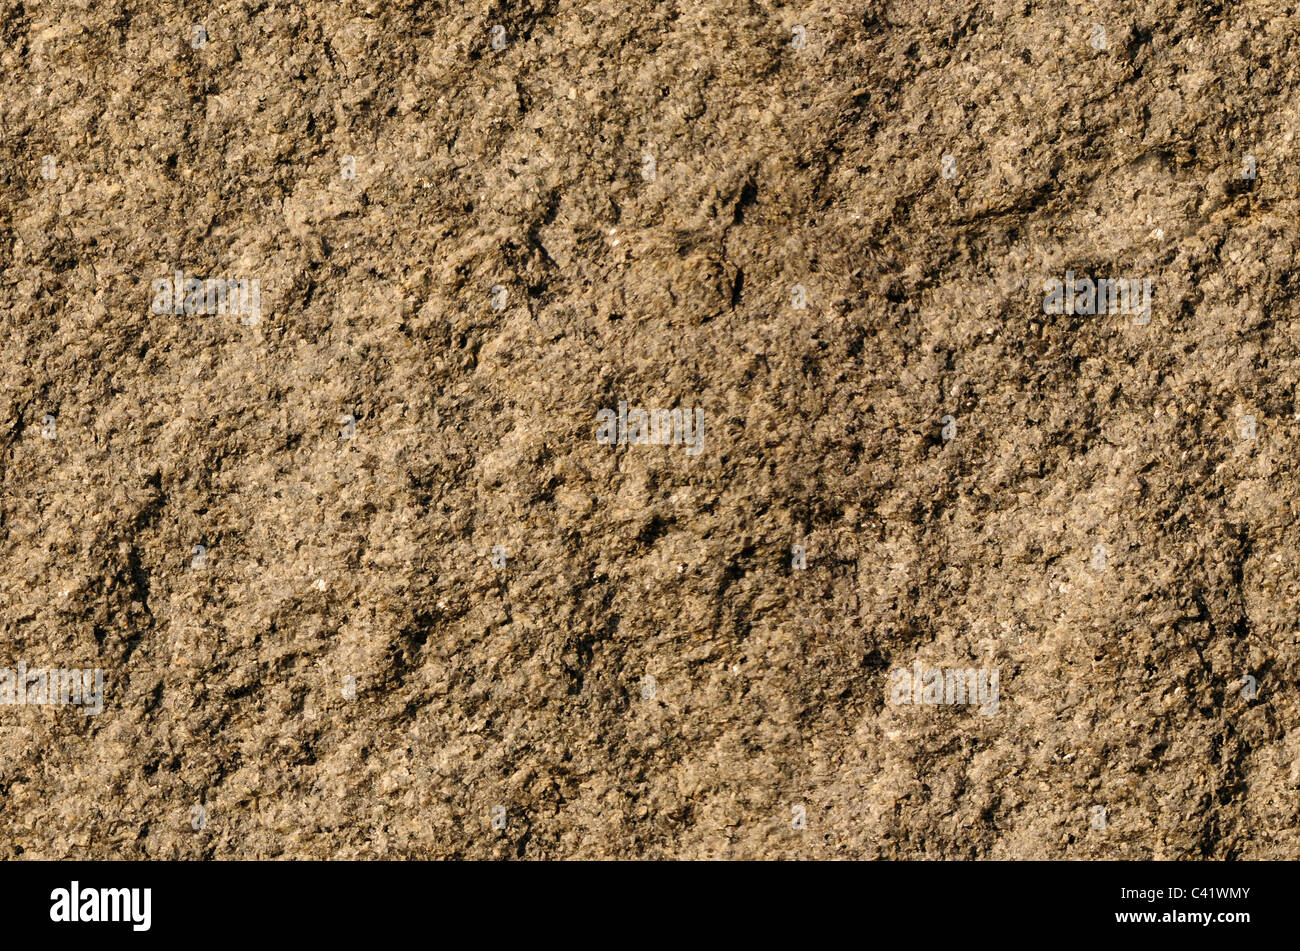 Textured gray rock surface texture background - Stock Image